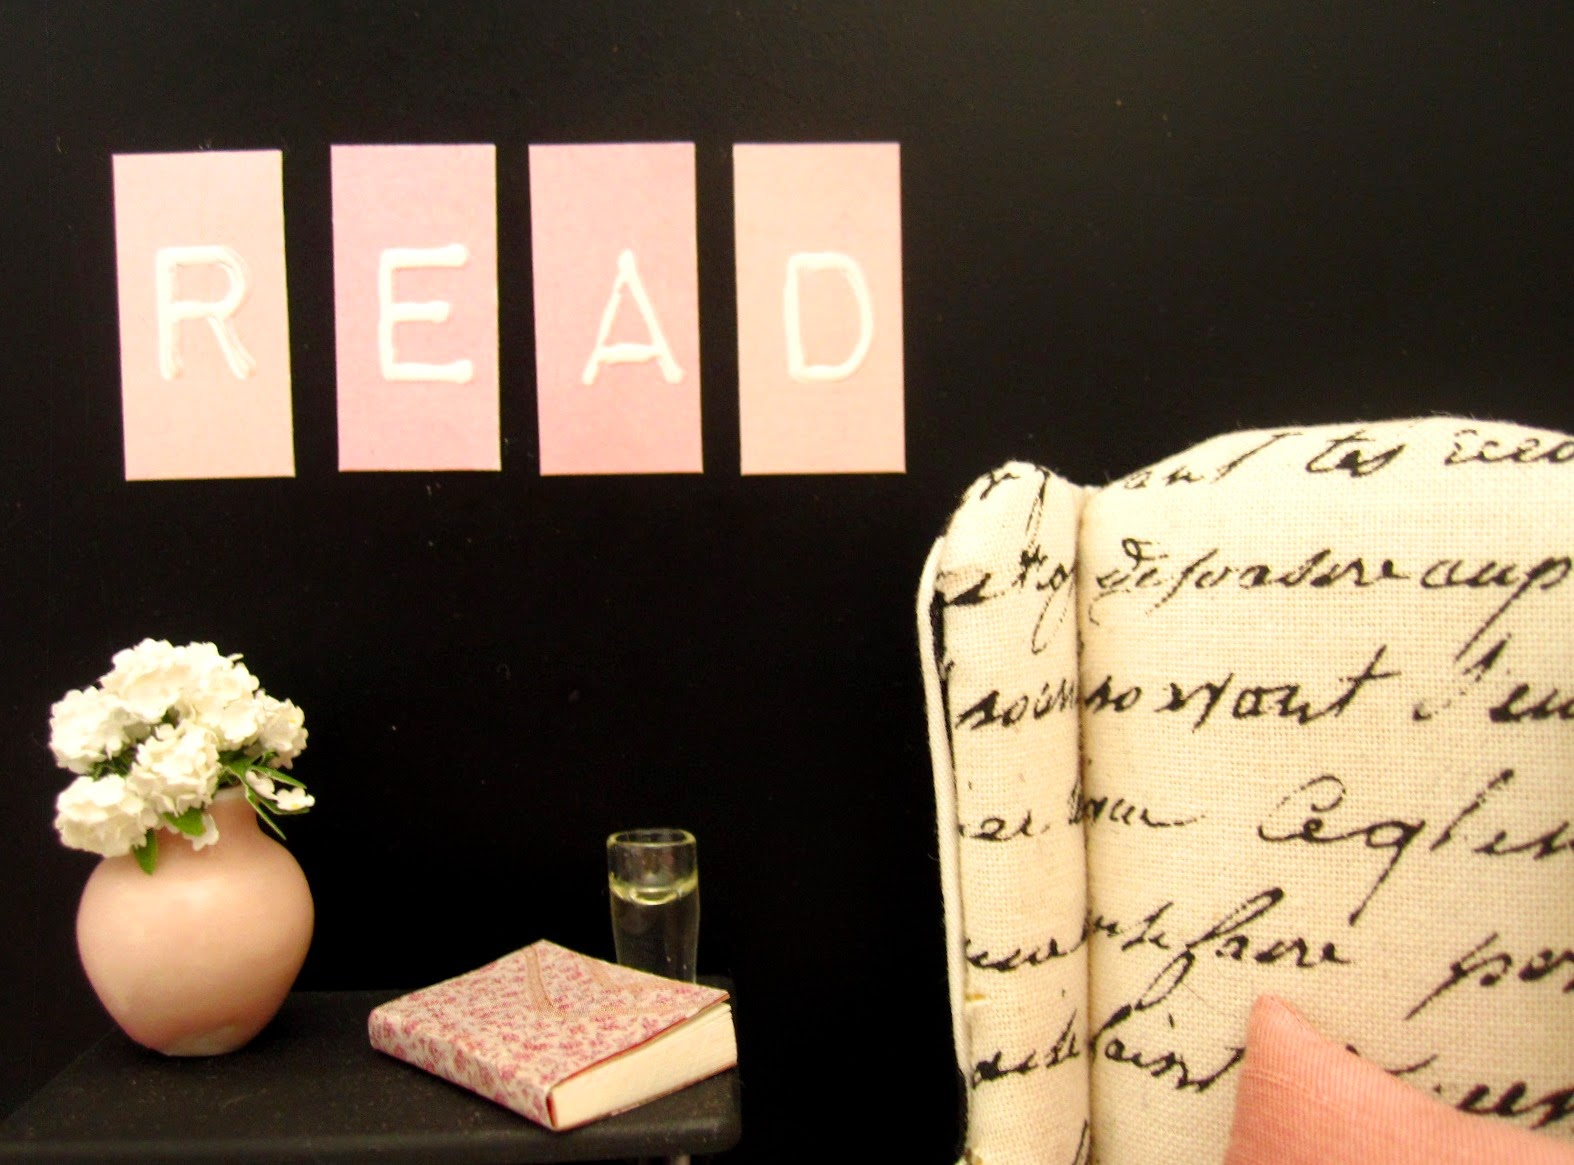 Modern doll's house miniature scene of a black and white wing chair against a black wall. On the wall are the letters R,E,A and D in pink and white and on the table under them is a pink vase with white flowers, a book and a glass of water.